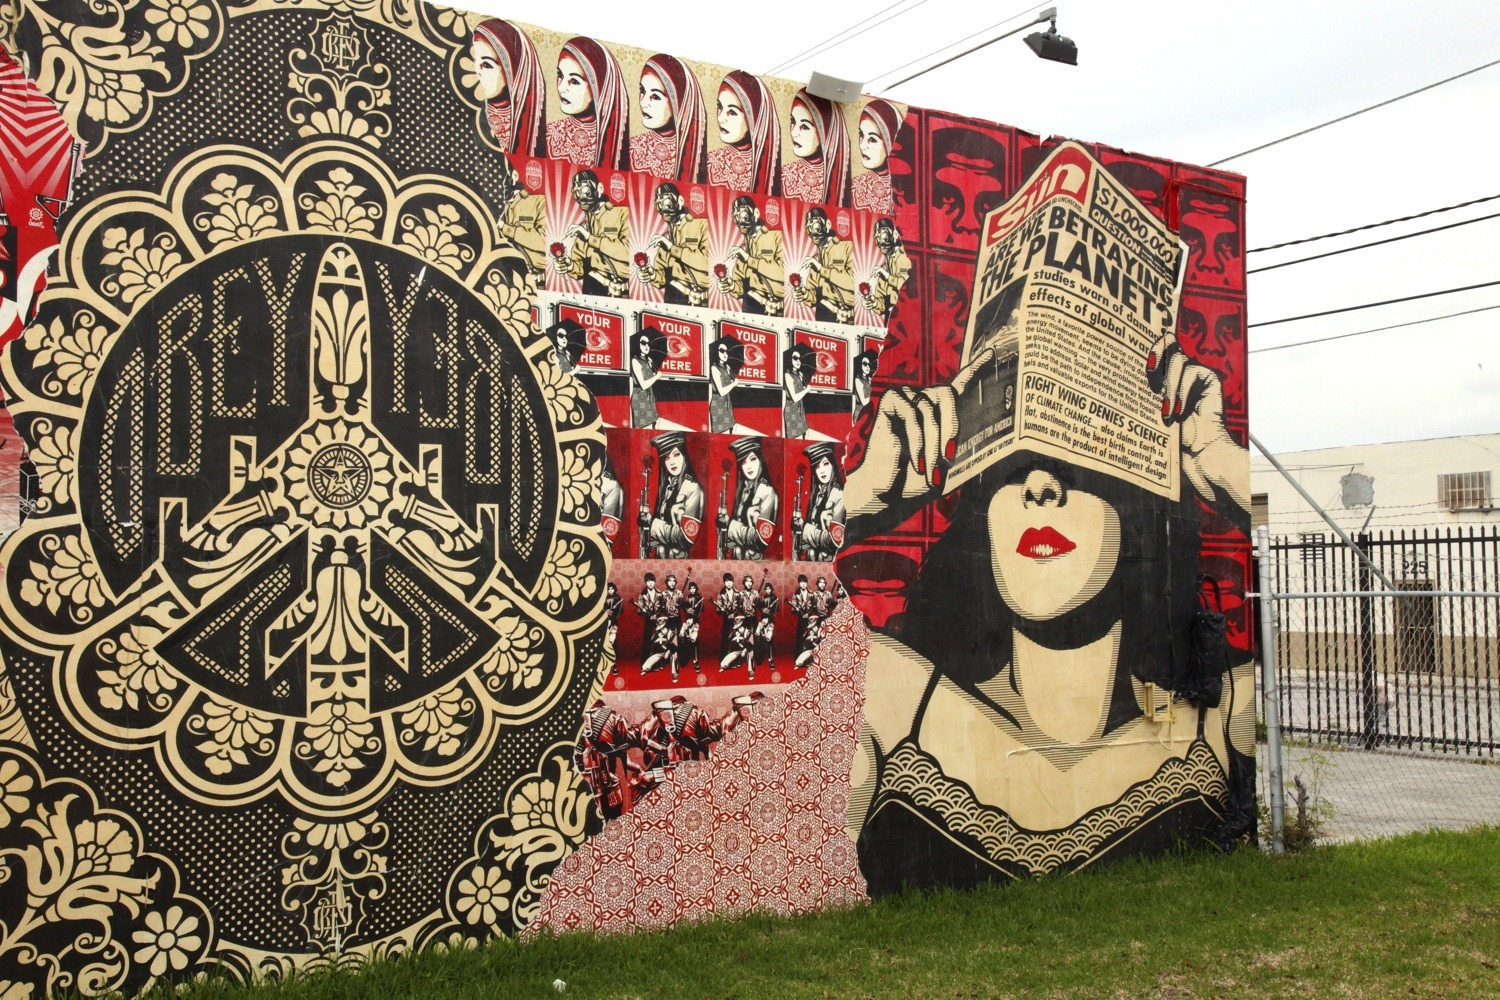 A Shepard Fairey contribution to Miami's glorious Wynwood Walls